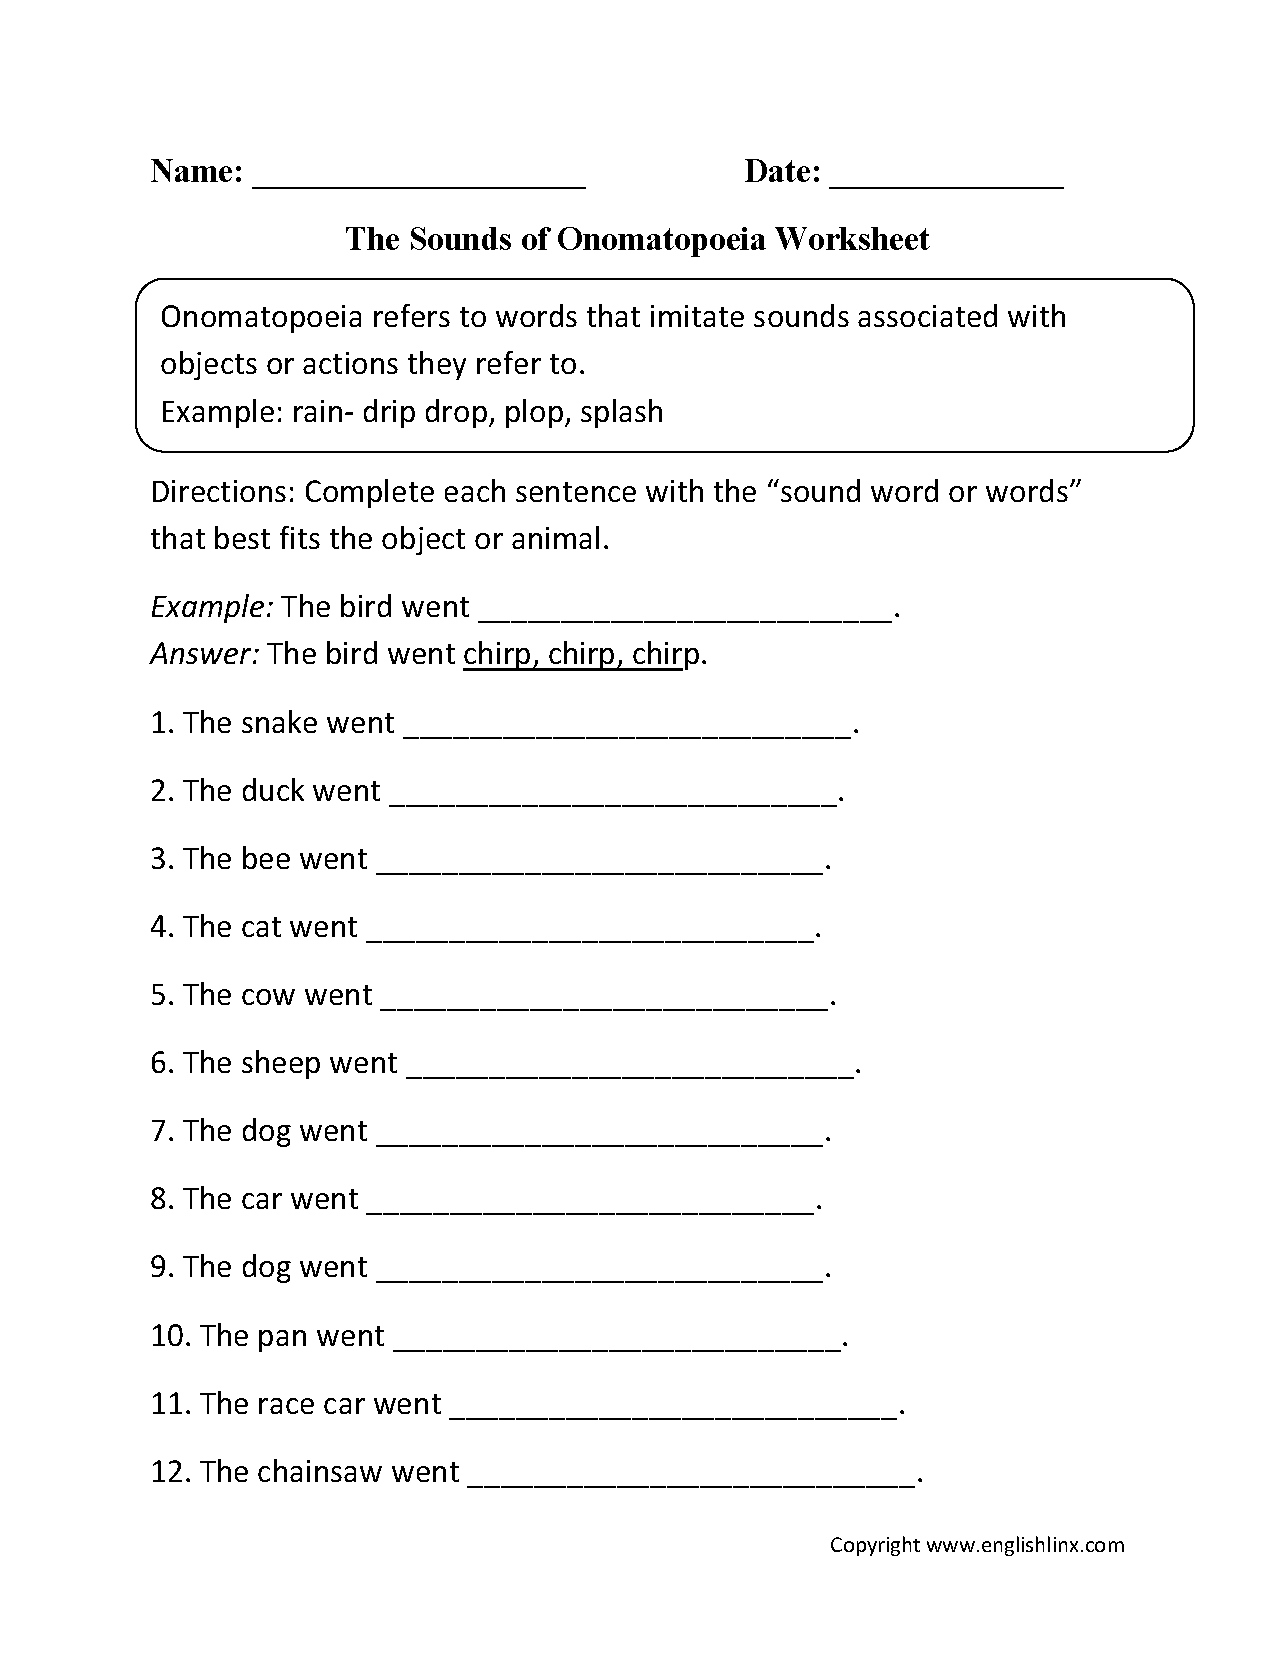 Weirdmailus  Pleasant Englishlinxcom  Onomatopoeia Worksheets With Foxy Worksheet With Awesome  Step Program Worksheets Also Chemistry Printable Worksheets In Addition Math Drills Worksheet And  Digit Addition Without Regrouping Worksheet As Well As Polygon Interior Angles Worksheet Additionally Merge Two Excel Worksheets From Englishlinxcom With Weirdmailus  Foxy Englishlinxcom  Onomatopoeia Worksheets With Awesome Worksheet And Pleasant  Step Program Worksheets Also Chemistry Printable Worksheets In Addition Math Drills Worksheet From Englishlinxcom